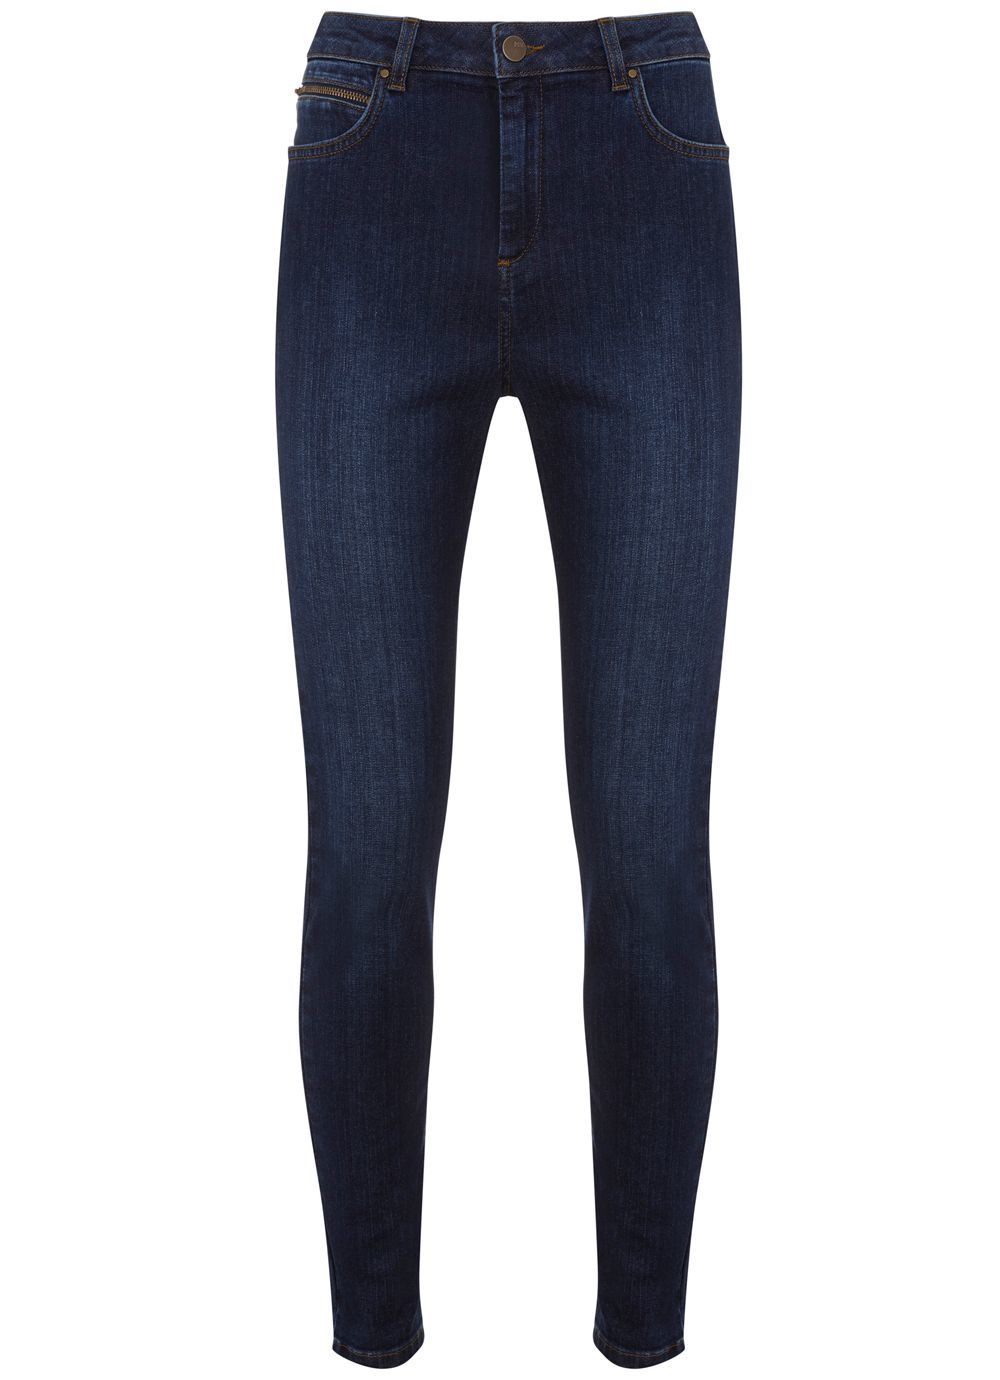 Indigo Lincoln Zip Skinny Jean, Blue - style: skinny leg; length: standard; pattern: plain; pocket detail: traditional 5 pocket; waist: mid/regular rise; predominant colour: navy; occasions: casual; fibres: cotton - stretch; texture group: denim; pattern type: fabric; season: s/s 2016; wardrobe: basic